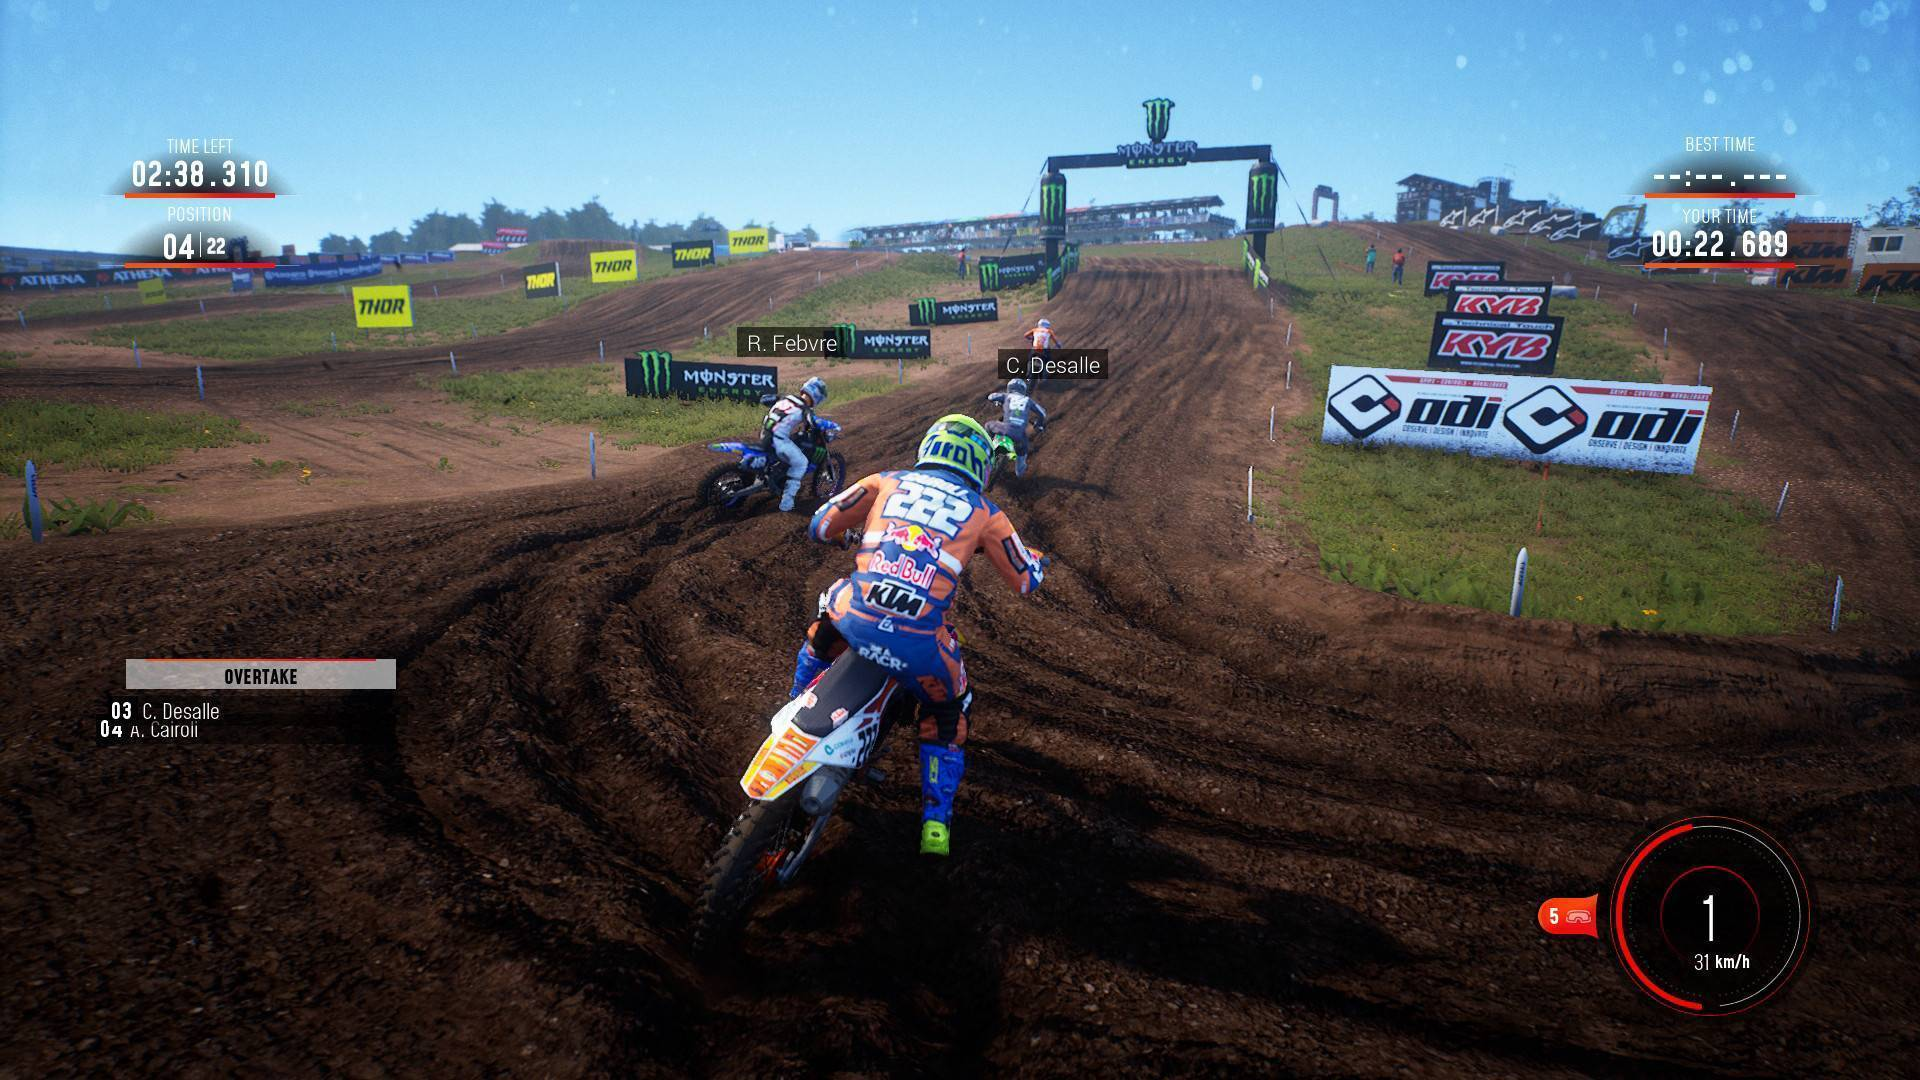 Article title about MXGP 2019